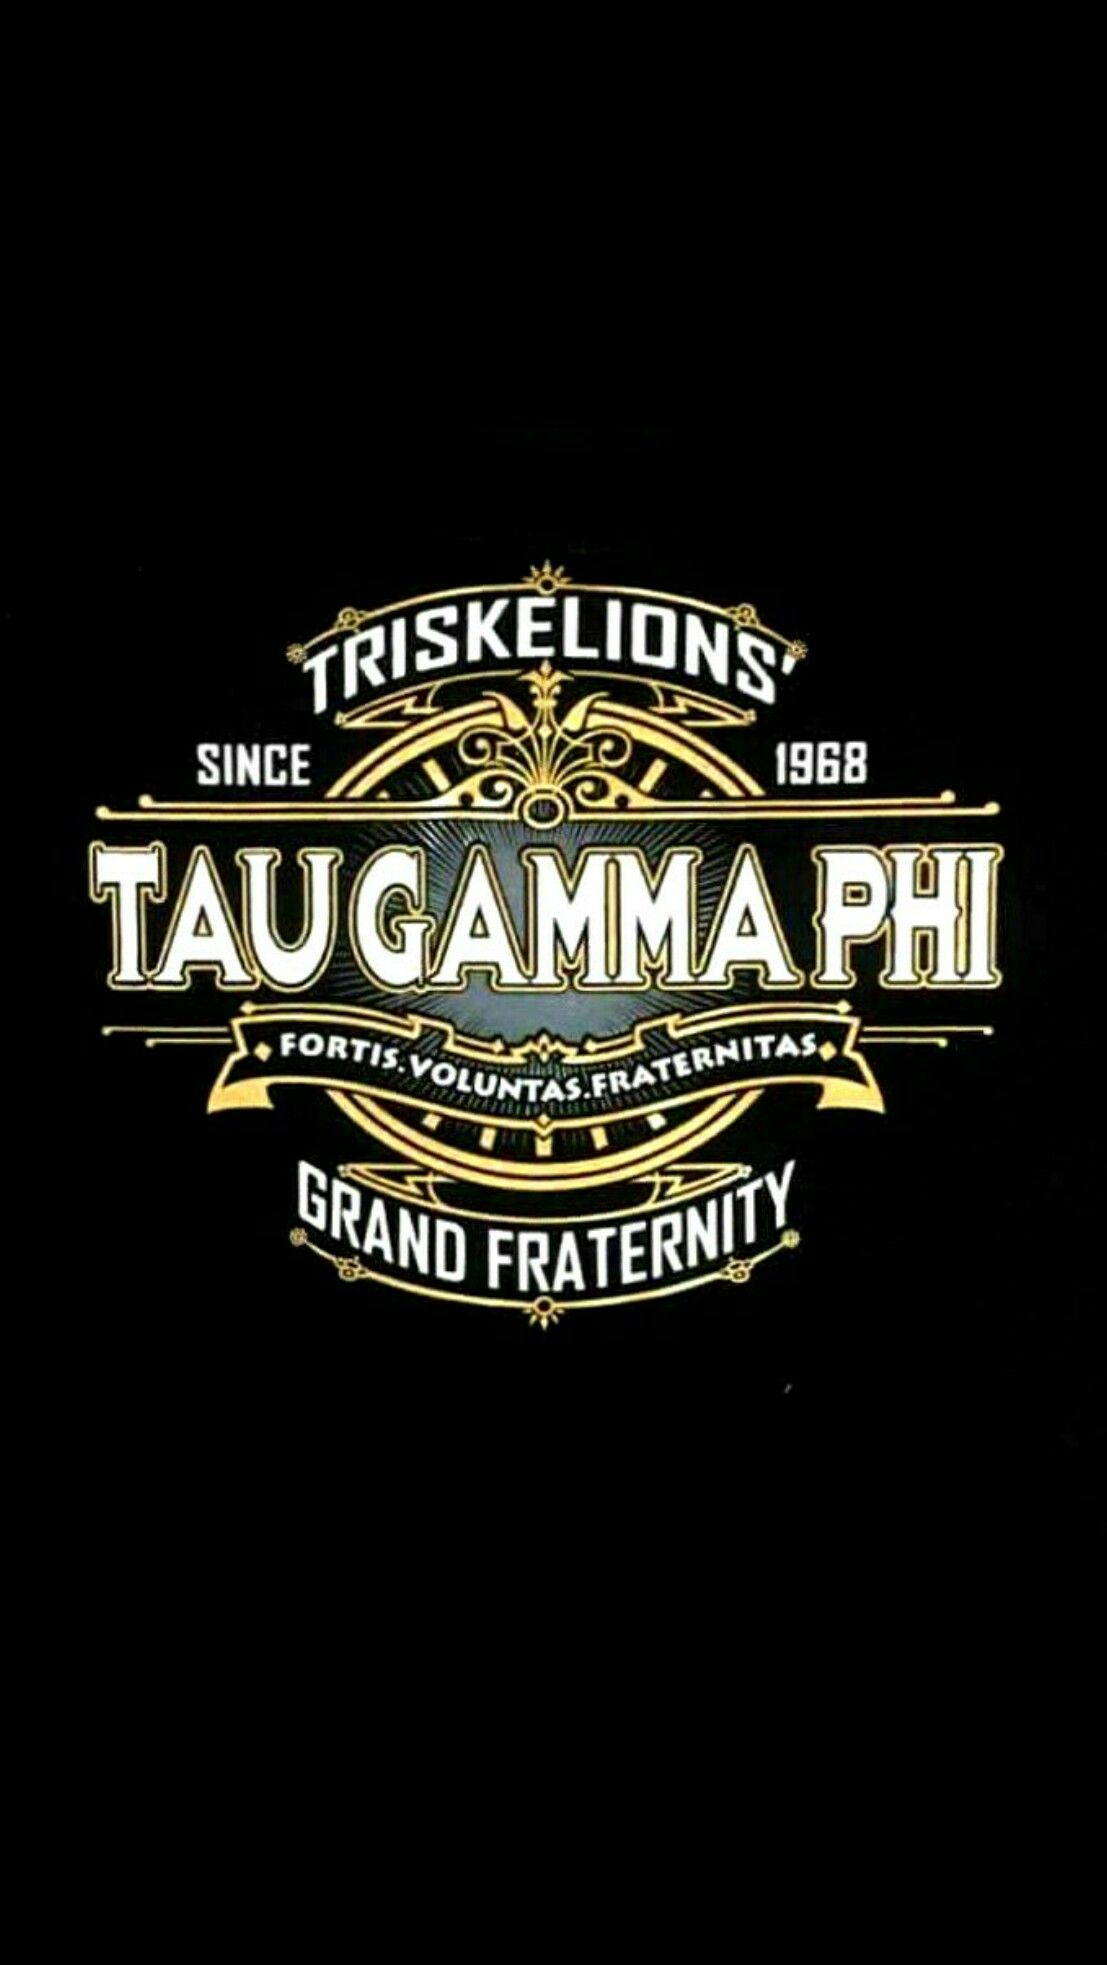 Taugamma Triskelion Black Wallpaper Android Iphone49